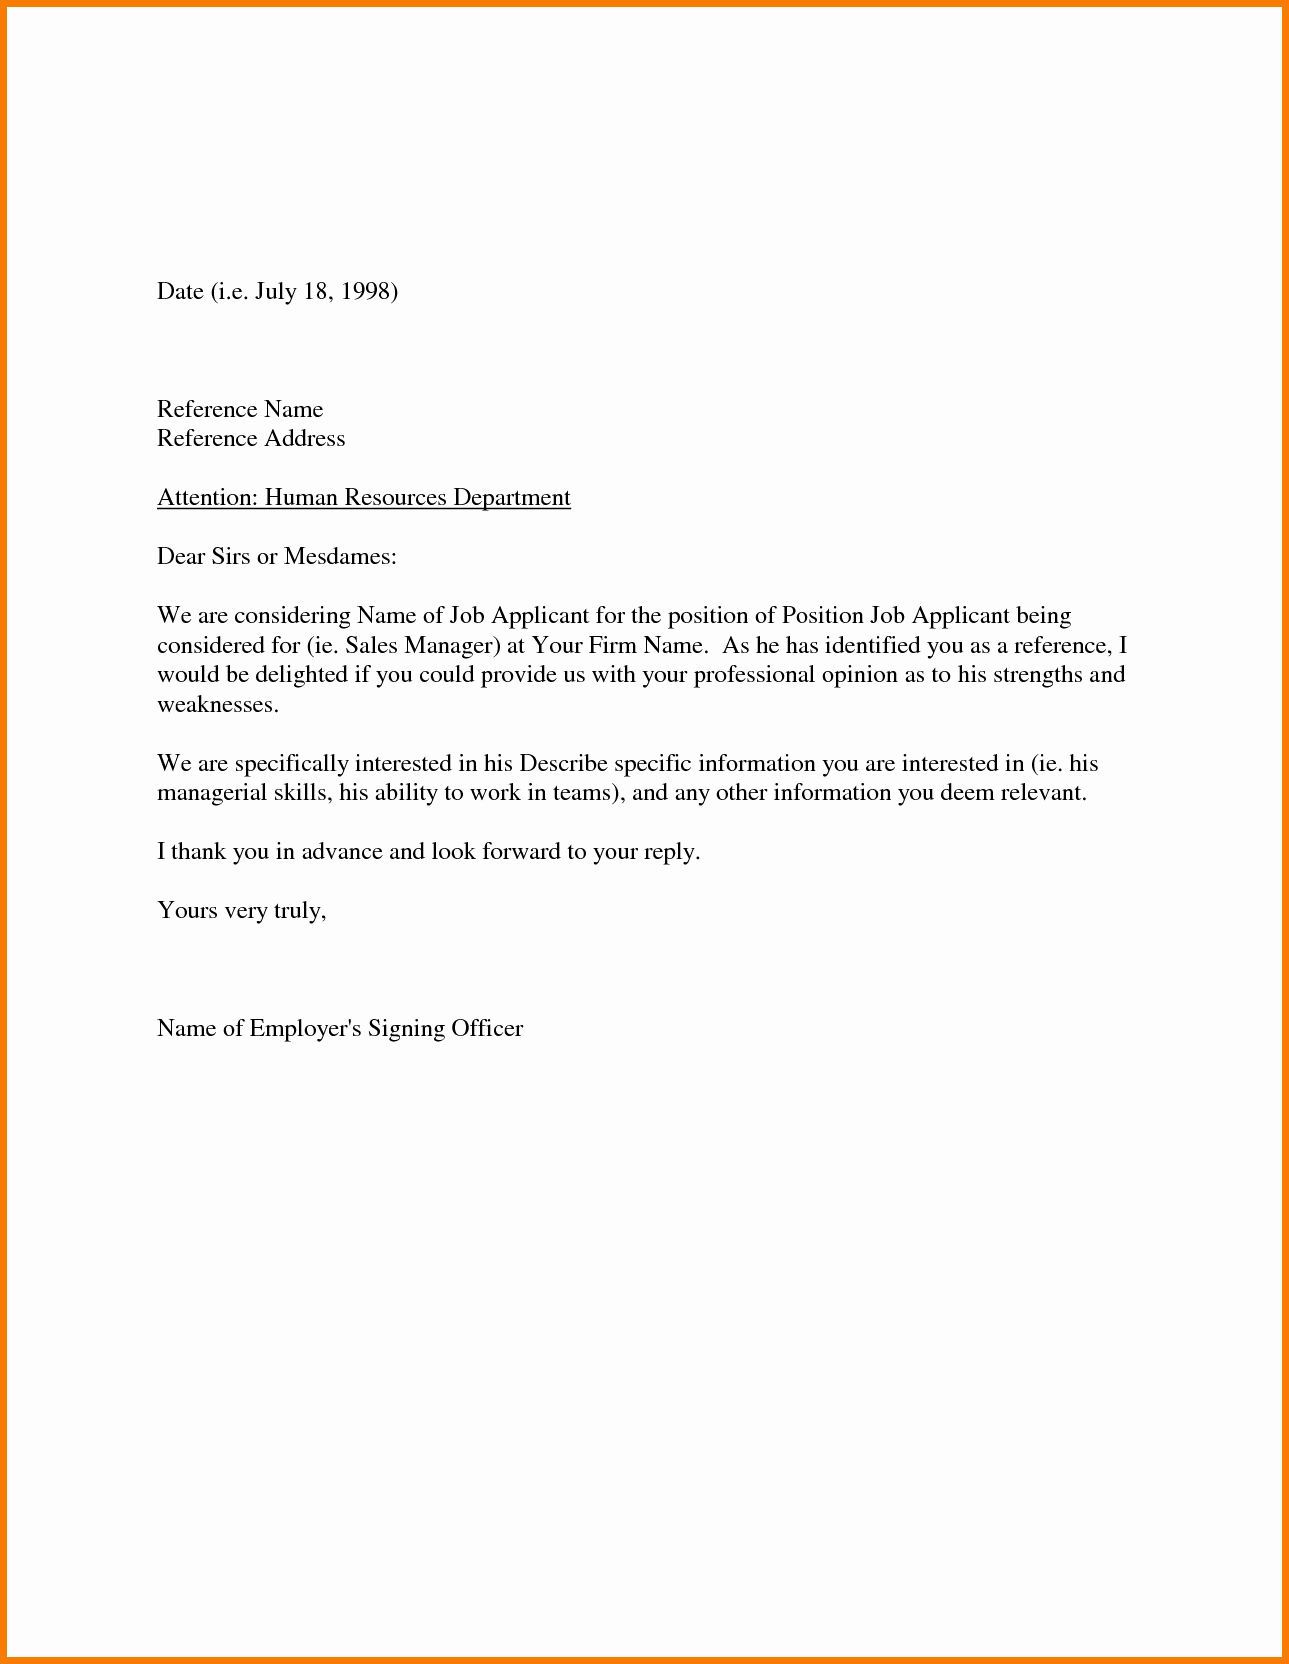 000 Rare Letter Of Recommendation Template Word Image  General Free DocFull